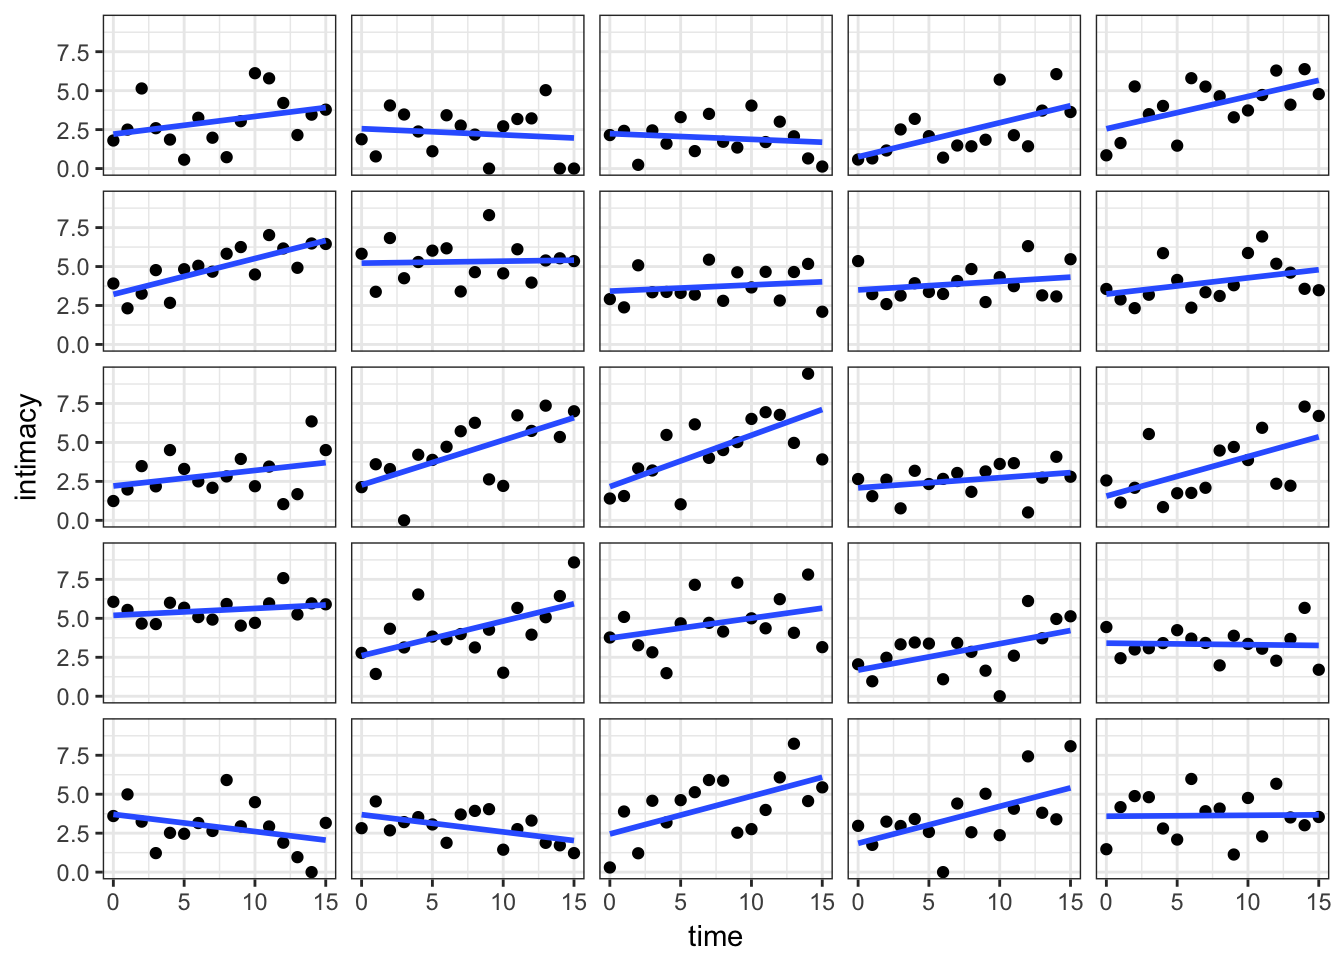 how to add another scatter line to already plotted graph